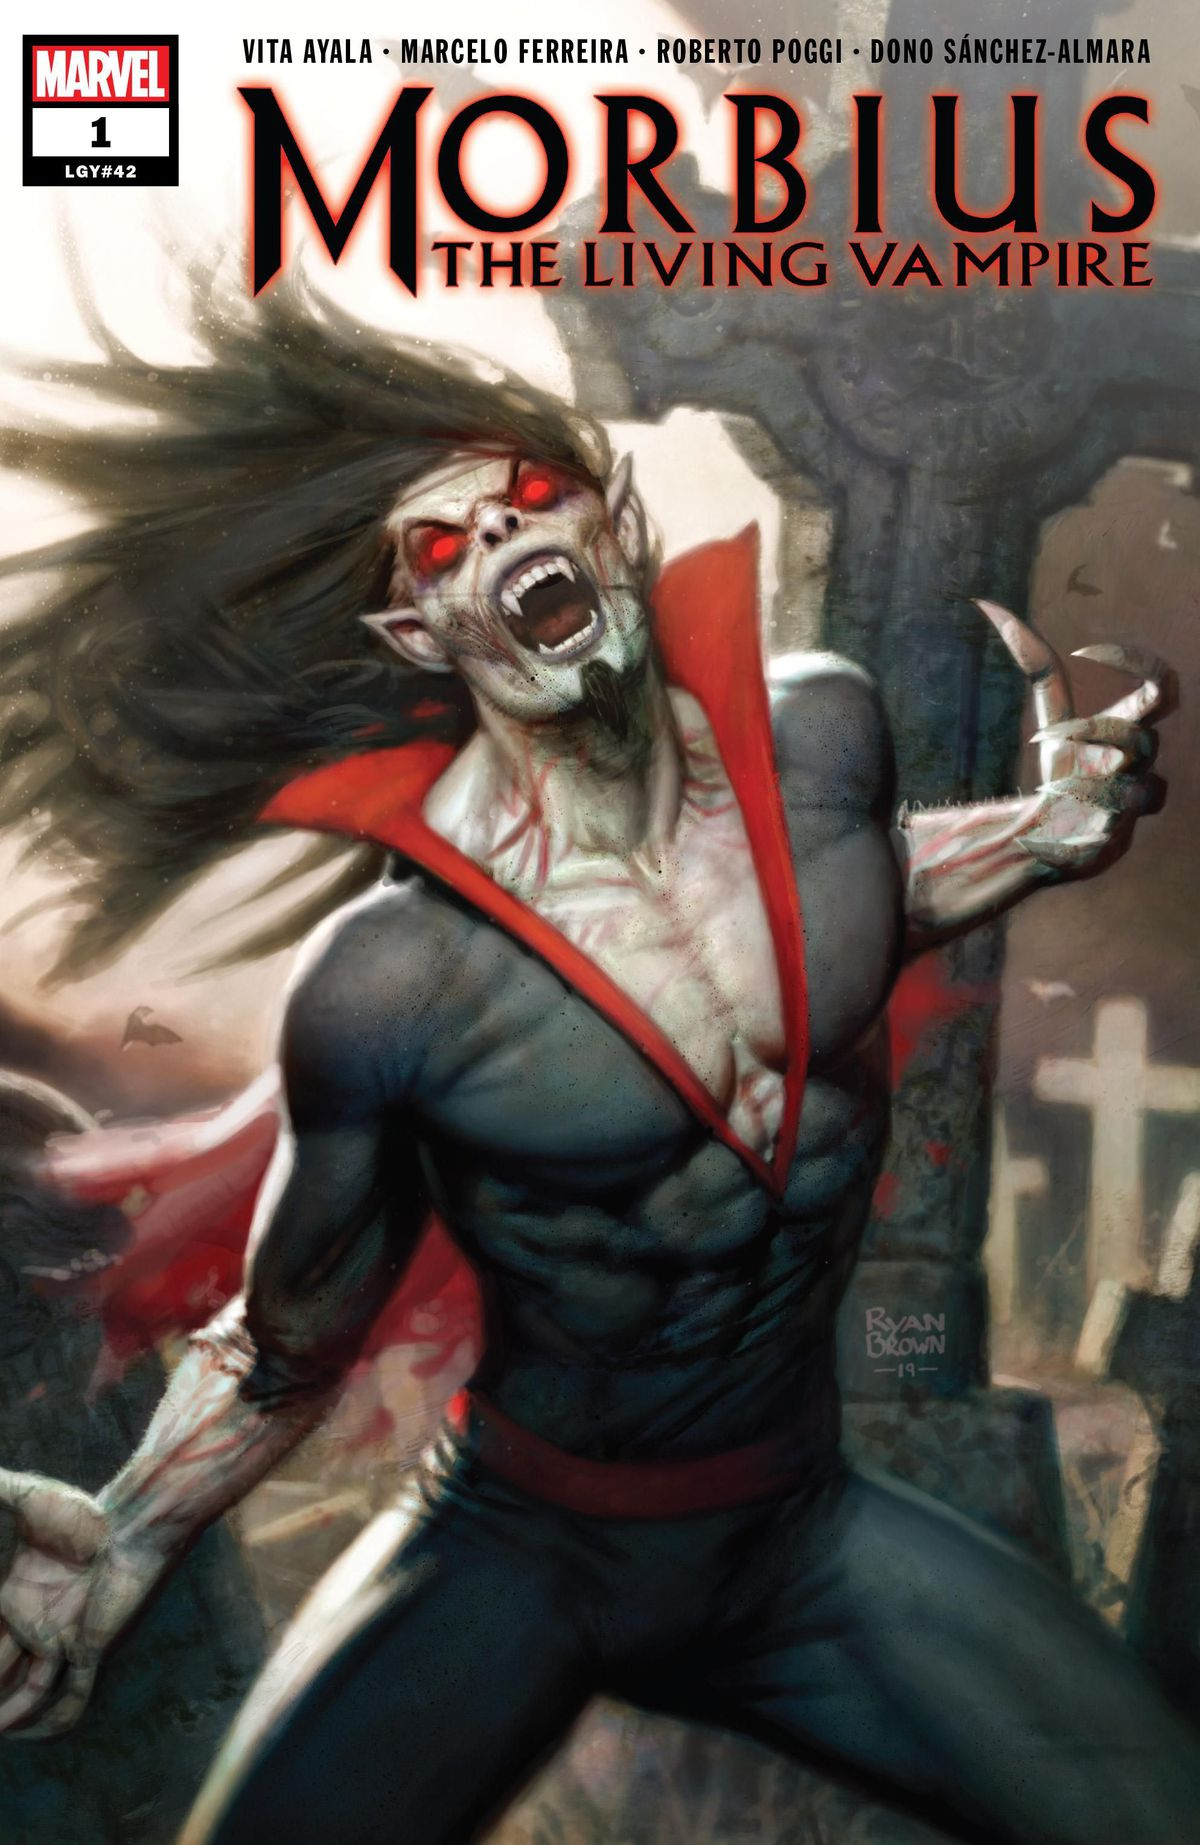 Morbius the Living Vampire, with pale skin, red eyes, long fangs, and wild hair, on the cover of Morbius #1, Marvel Comics (2020).